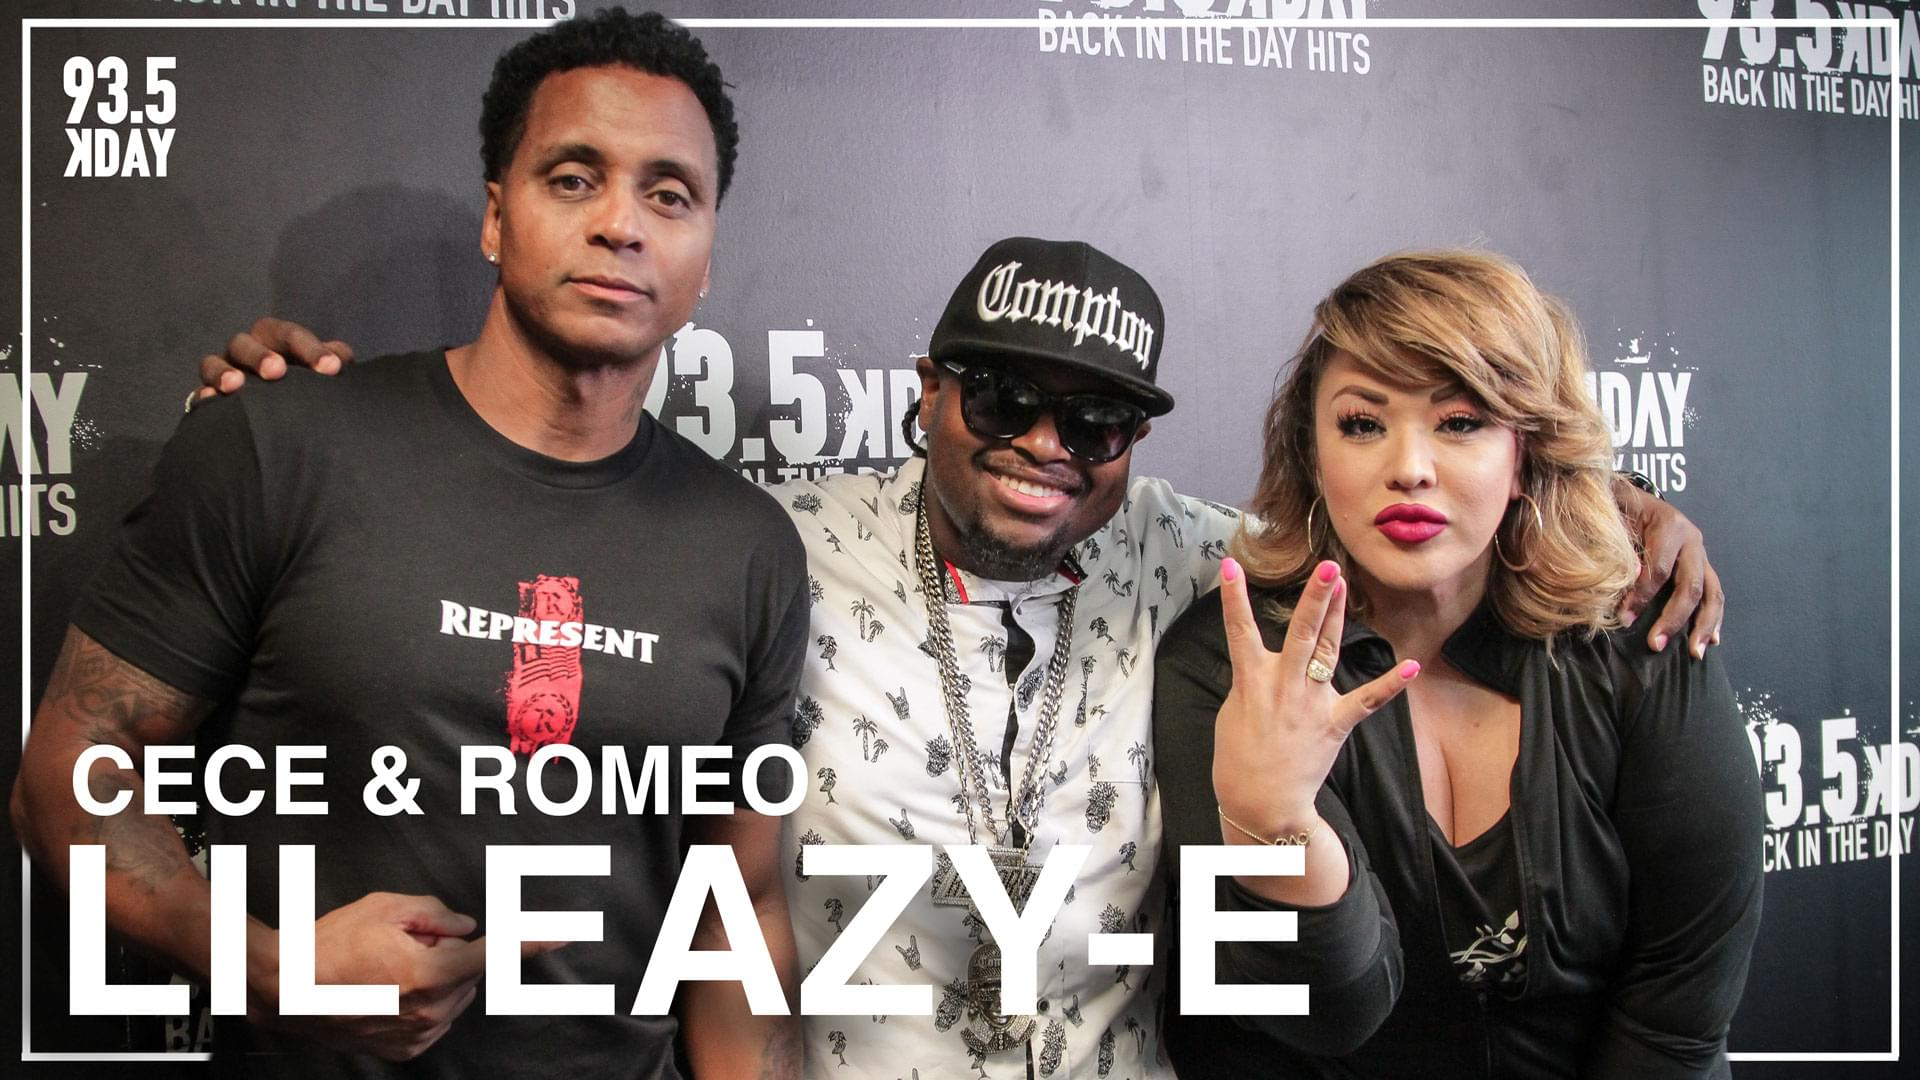 Lil Eazy E On Pressure To Uphold Eazy E S Legacy W New